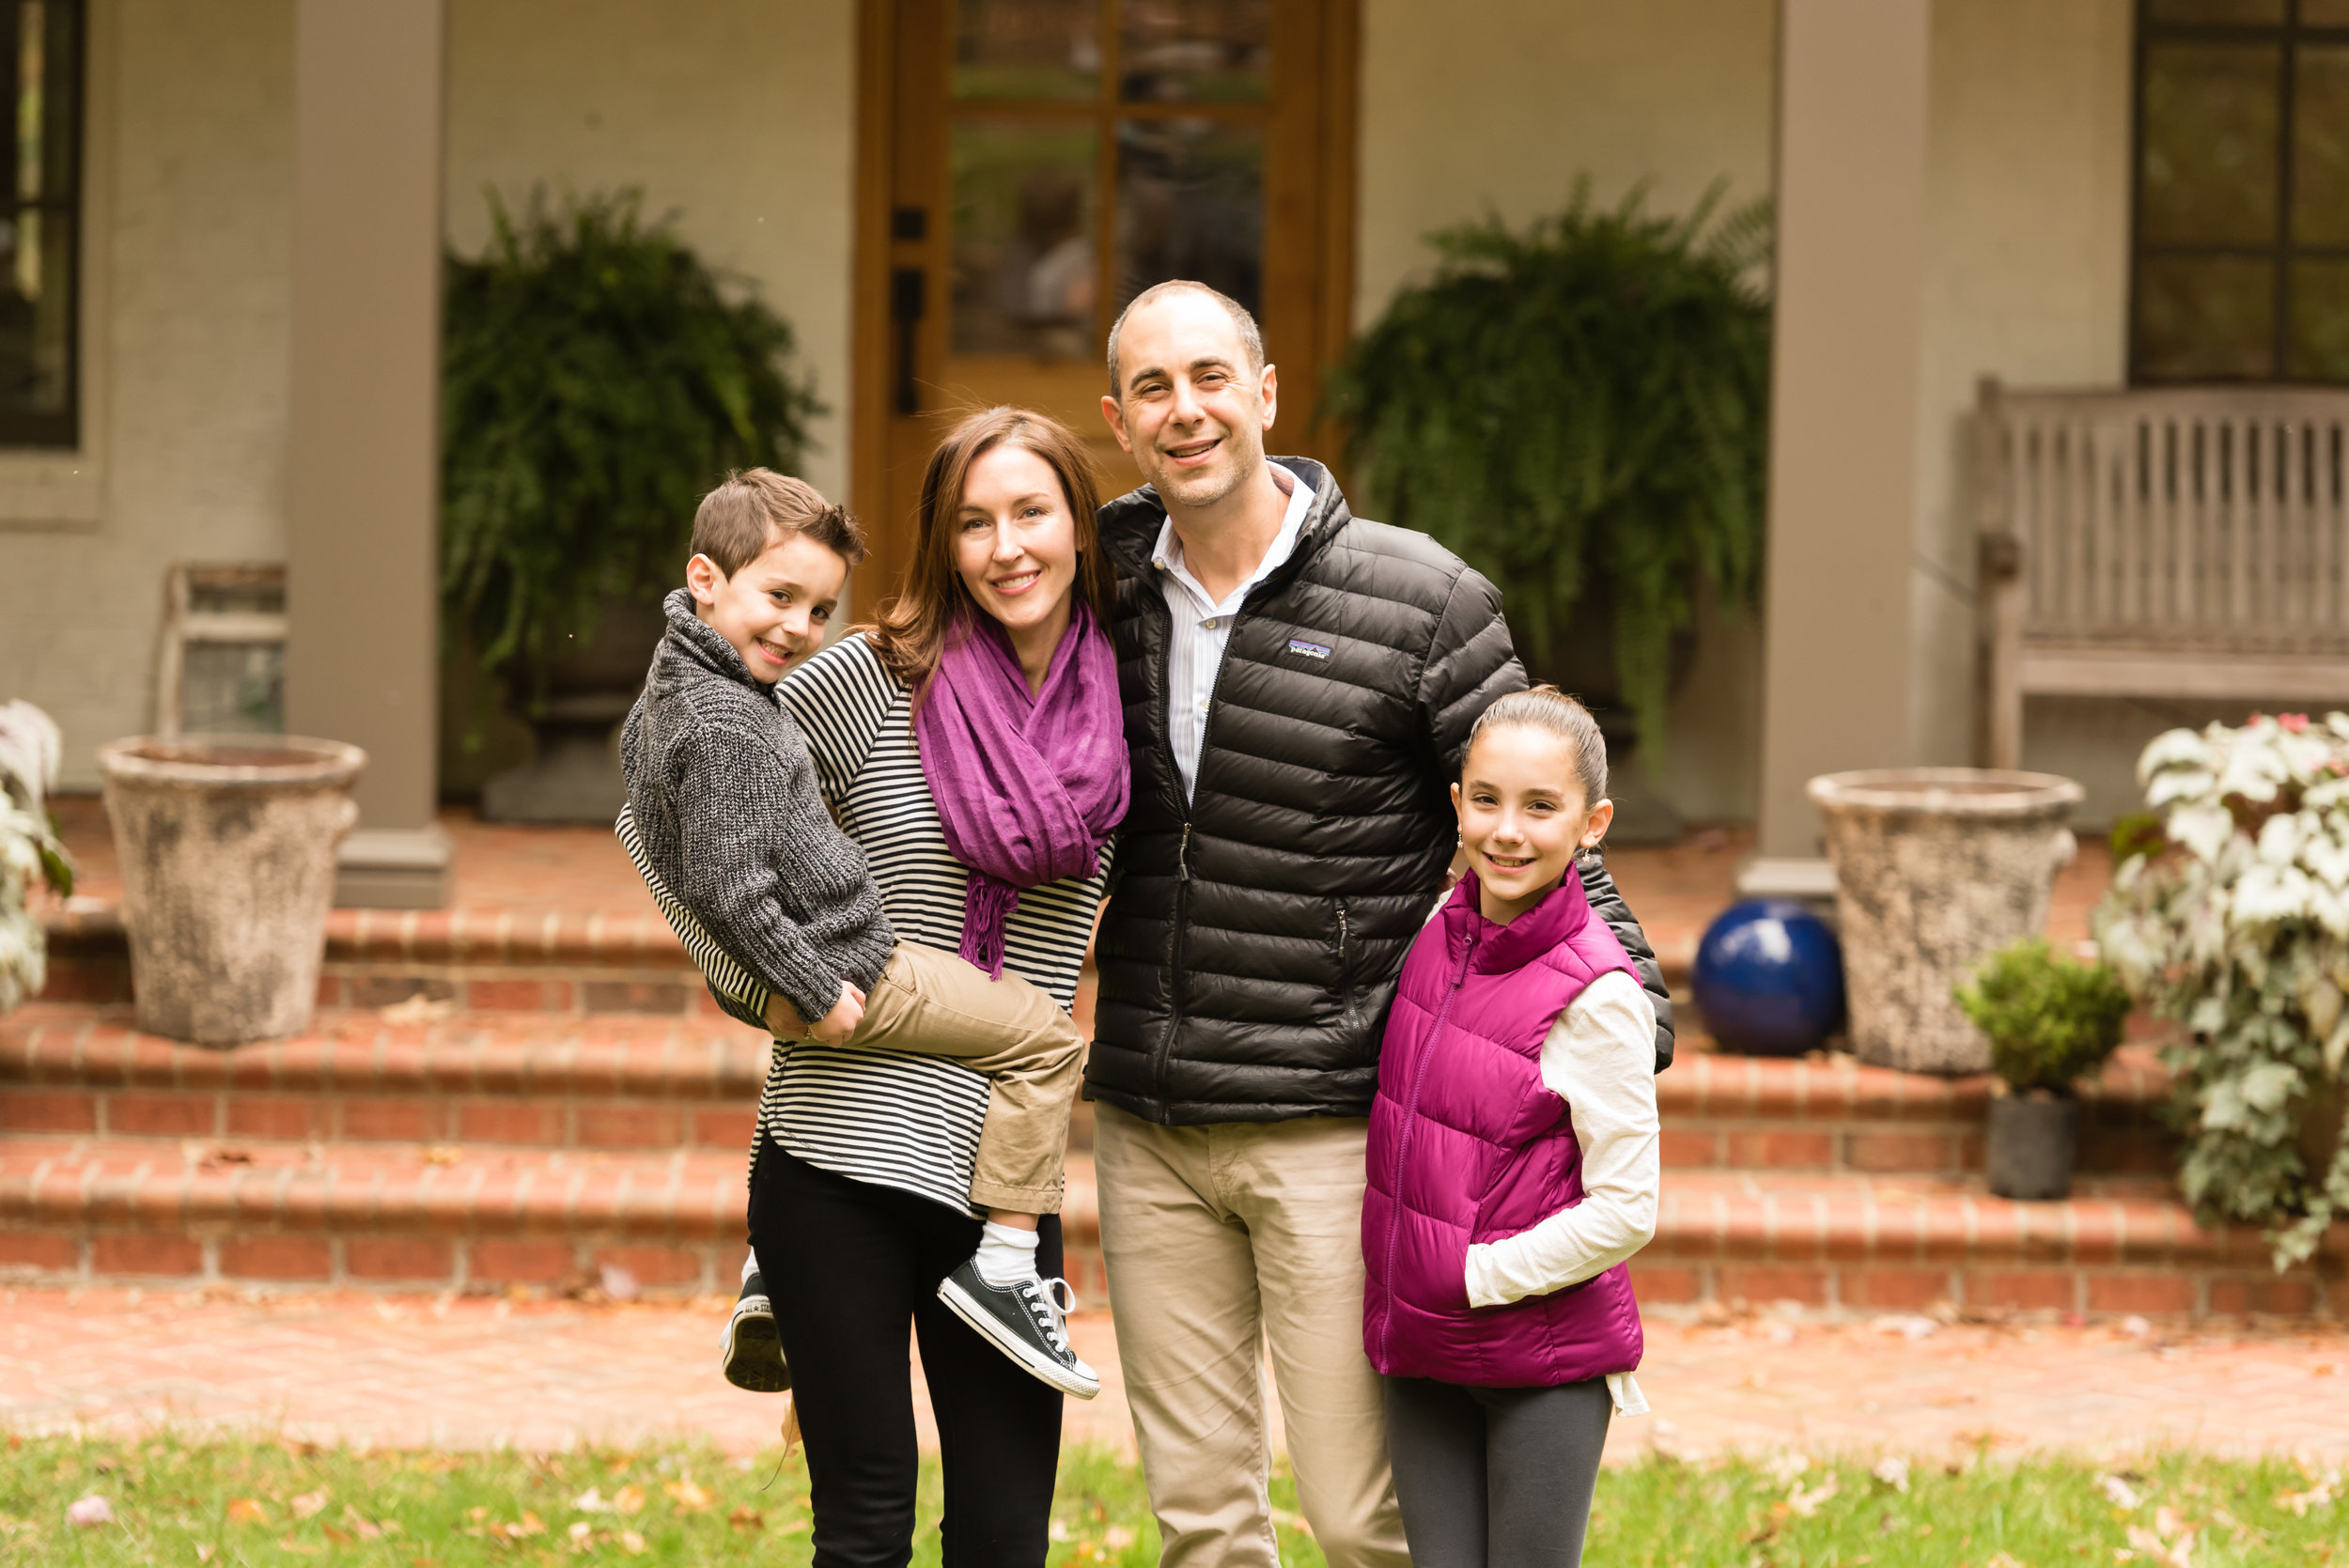 This family rocked their styling, using layers, patterns, pops of coordinated color, and neutrals.